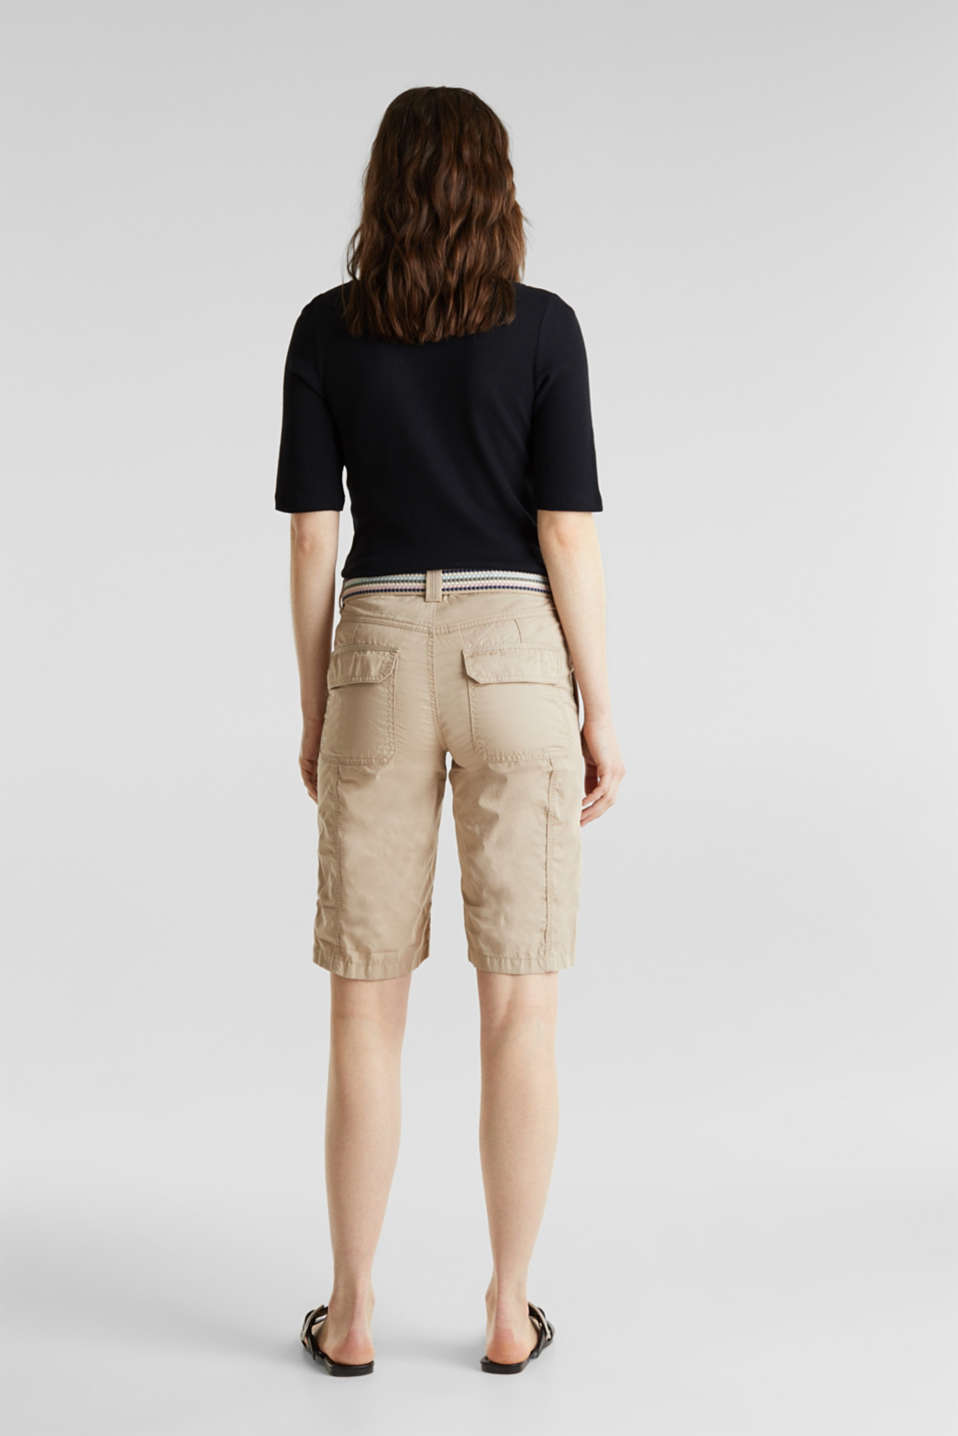 PLAY cotton shorts, BEIGE, detail image number 3